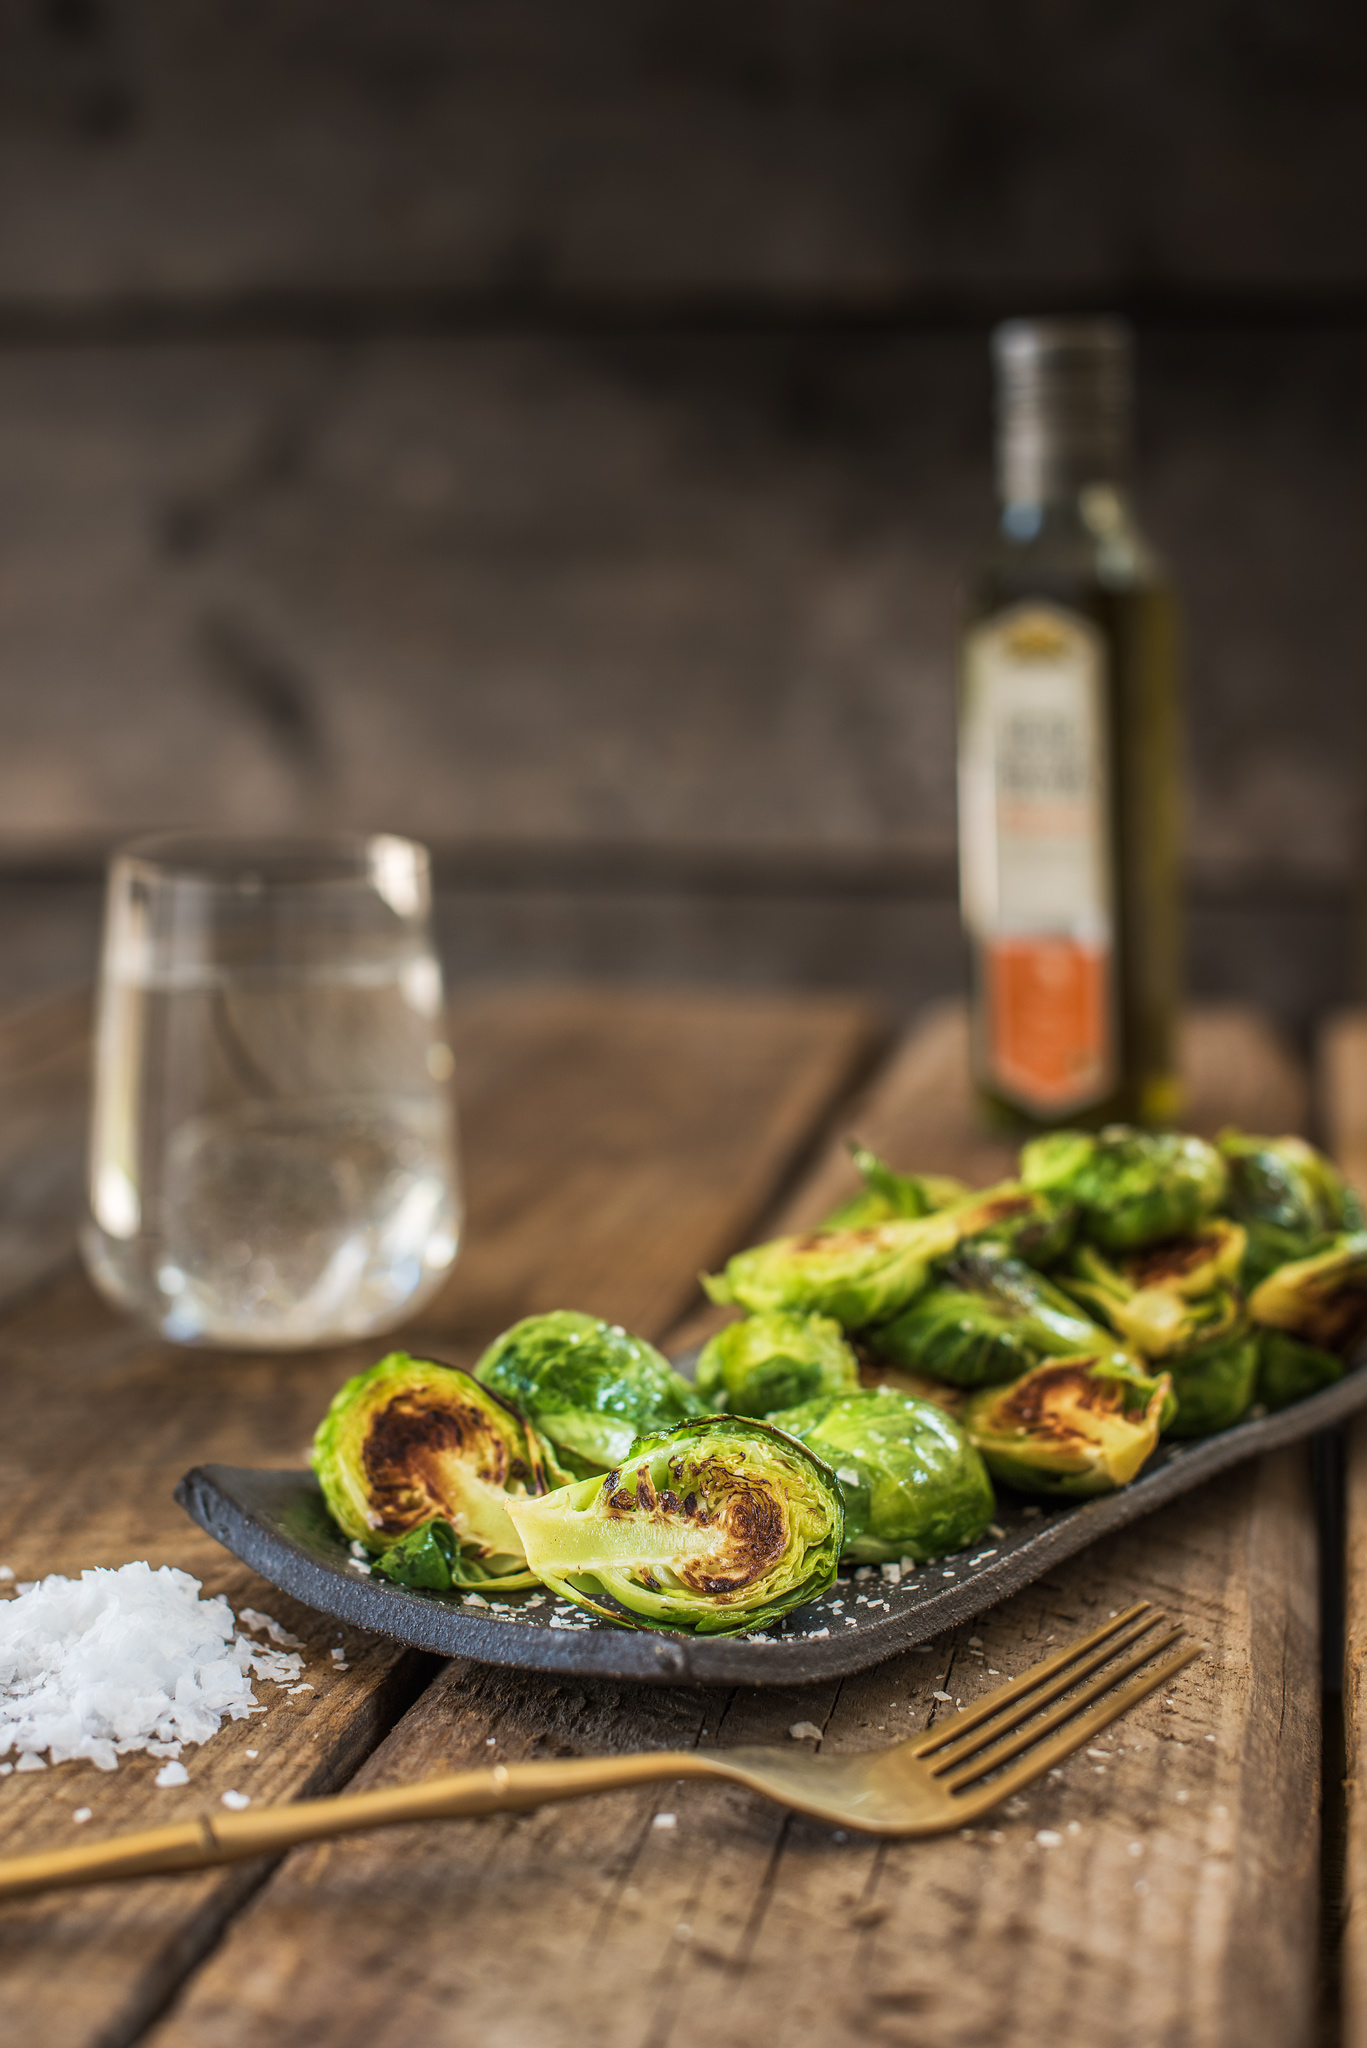 BrusselSprouts-1.jpg